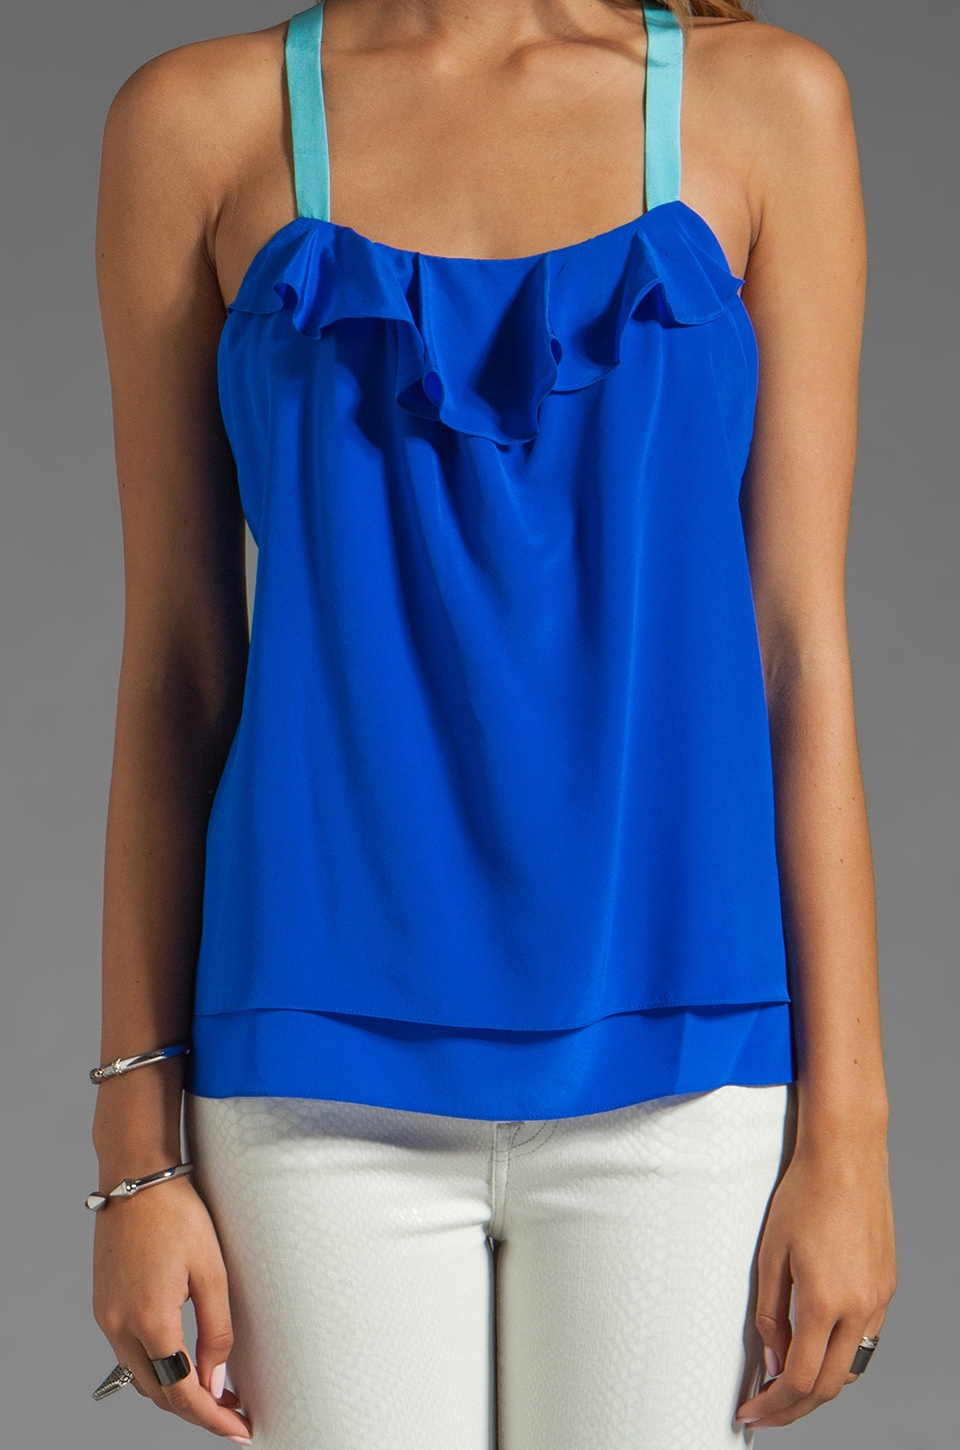 Jay Godfrey Ginger Low Back Tank in Sapphire Blue/Sky Blue